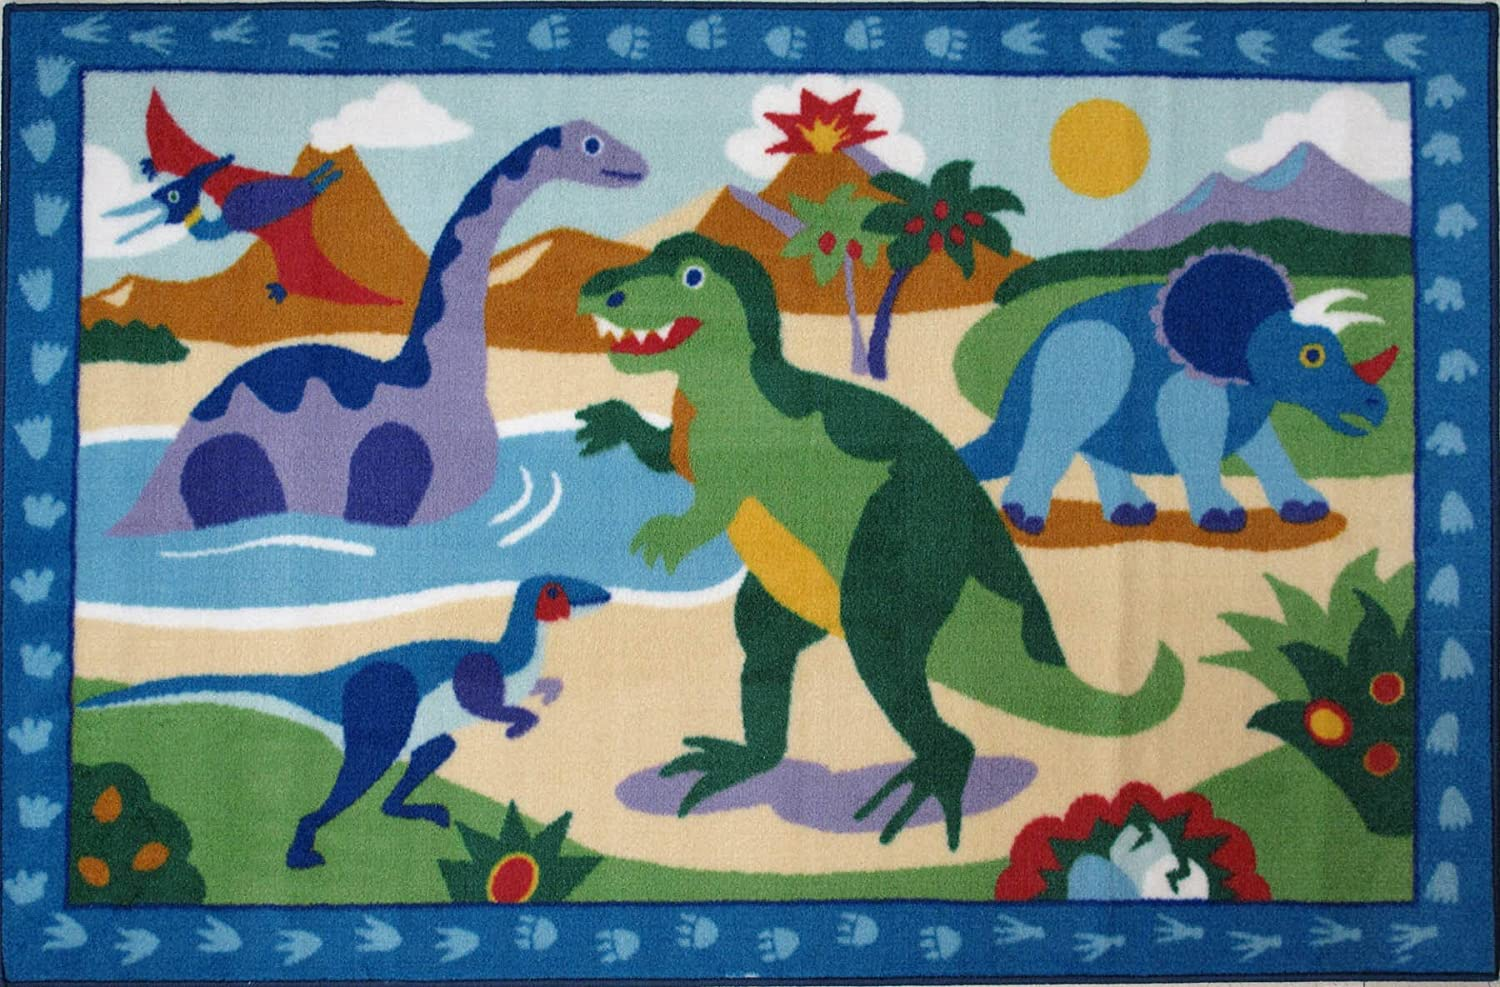 Olive Kids - Dinosaurland Kids Rugs - 39 x 58 in. by Fun Rugs